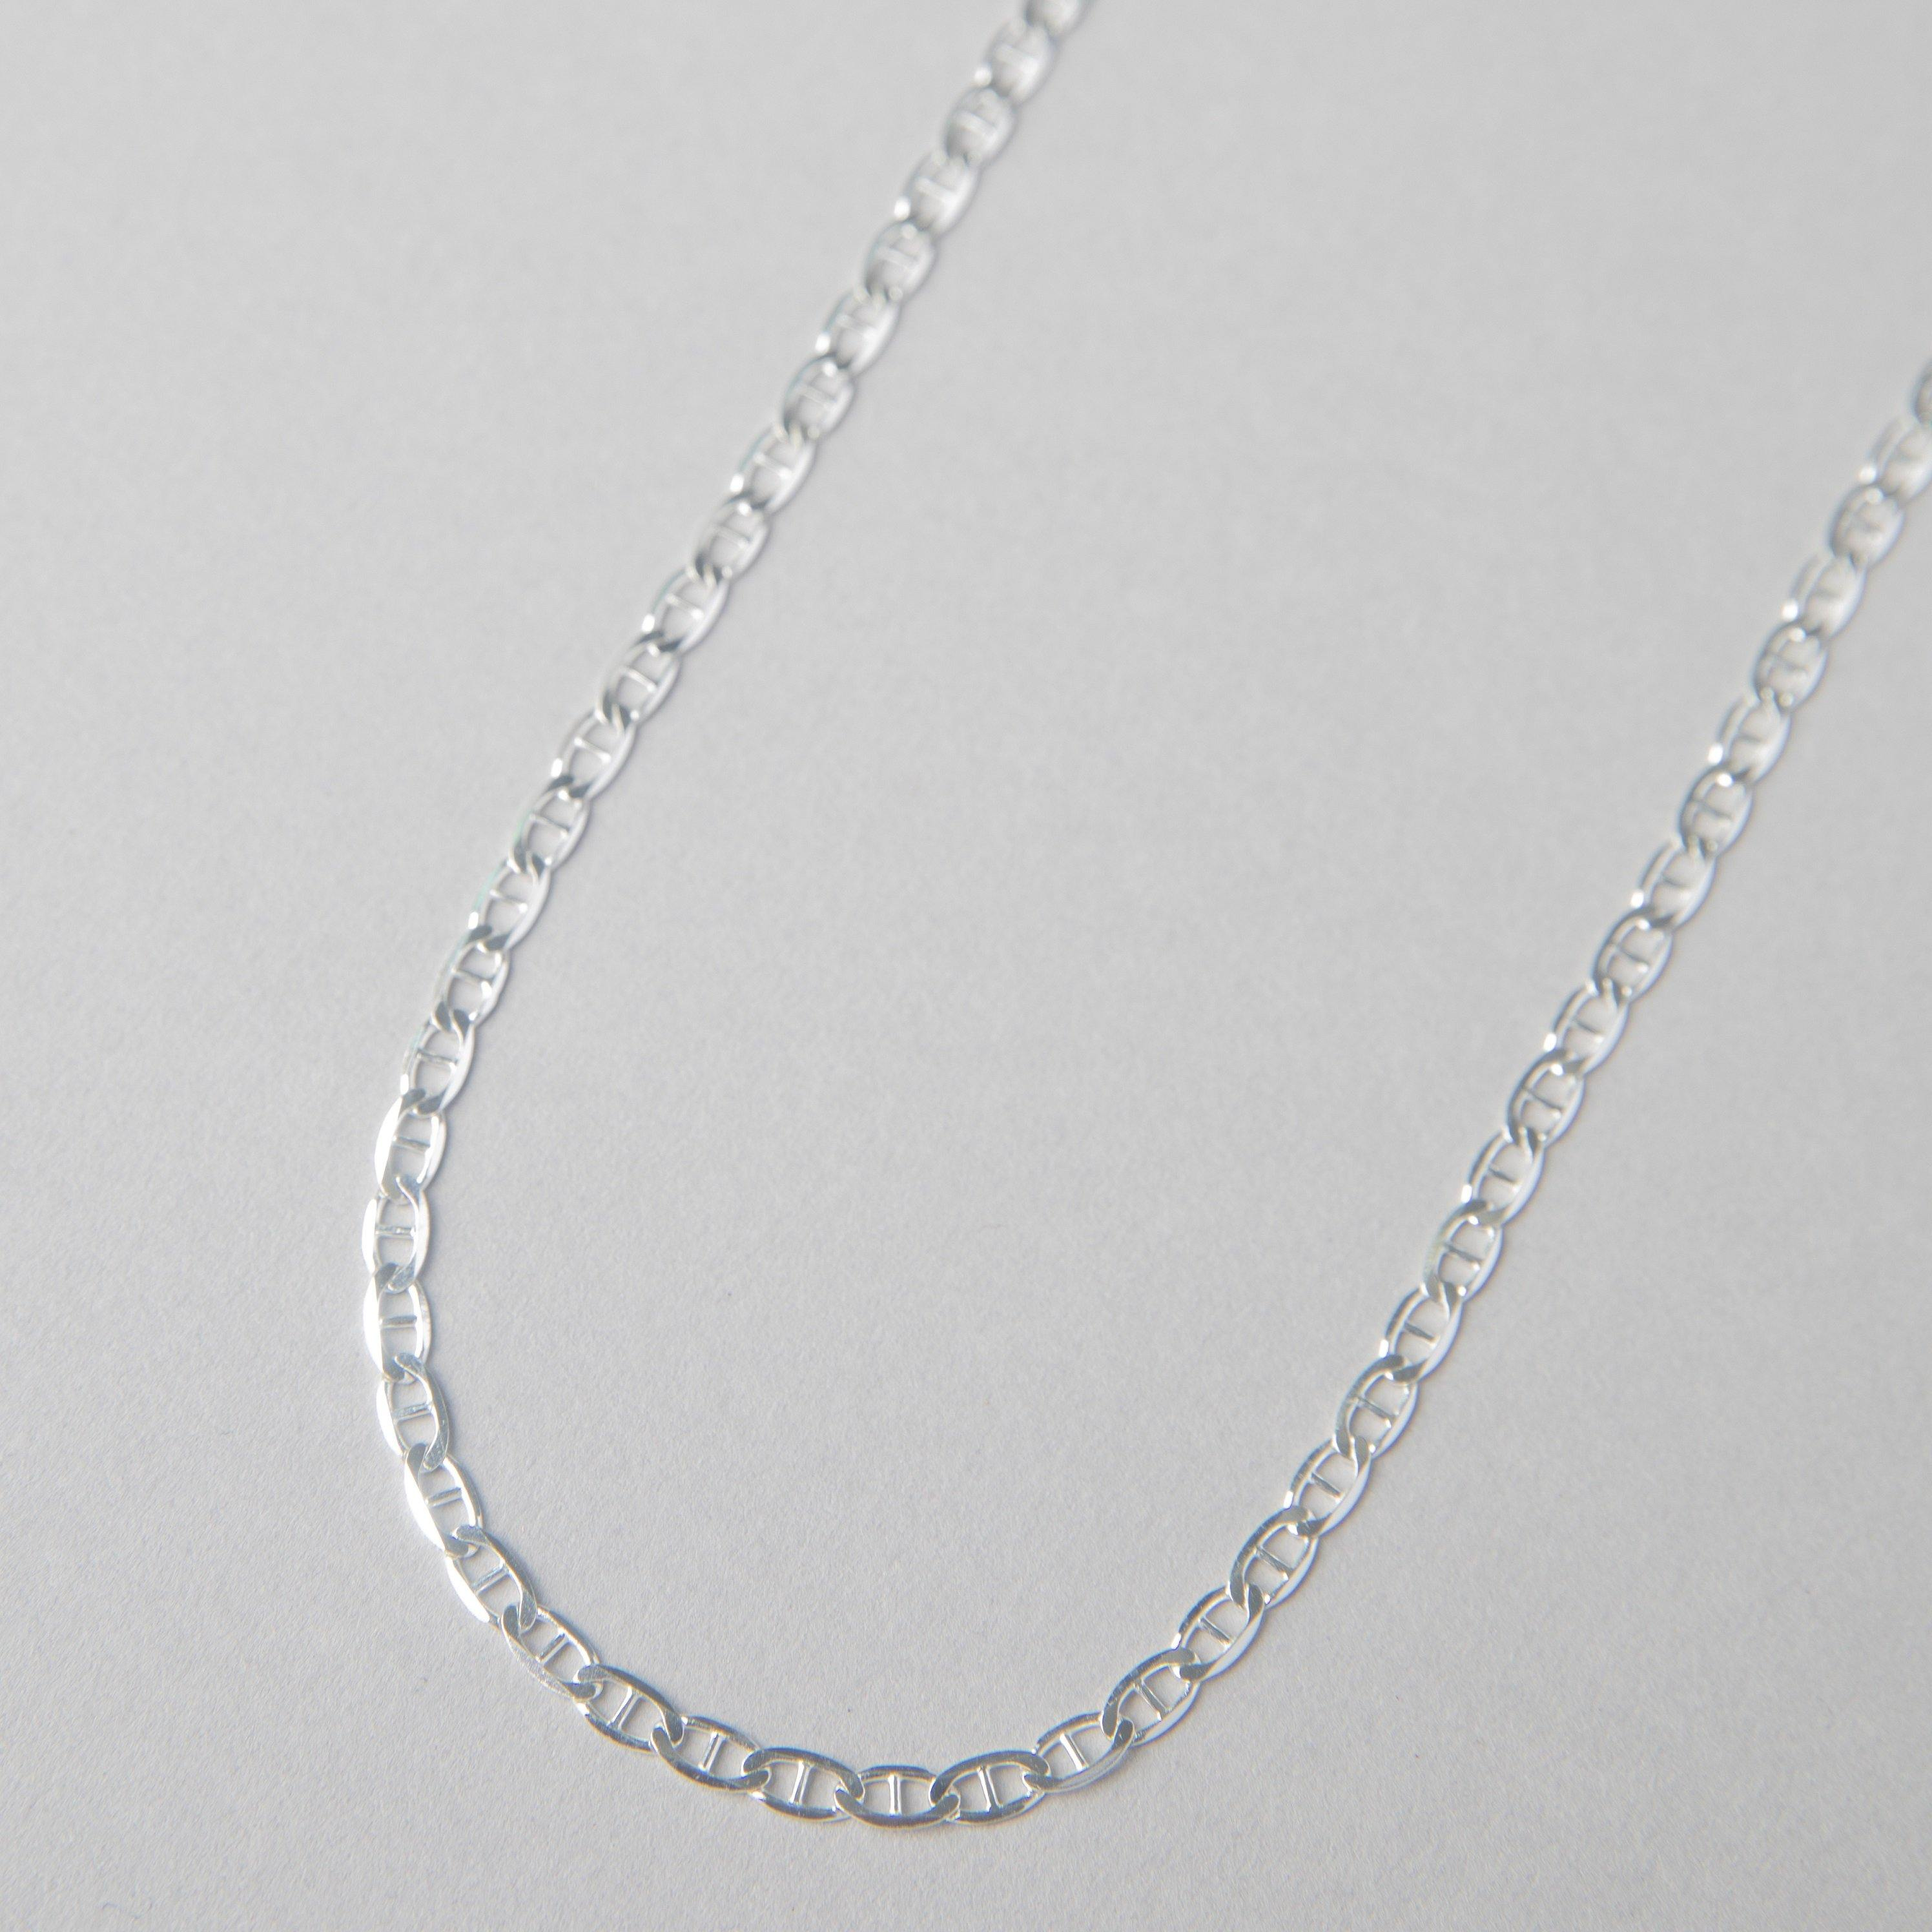 XL FLAT MARINER STERLING CHAIN - bobbie carr